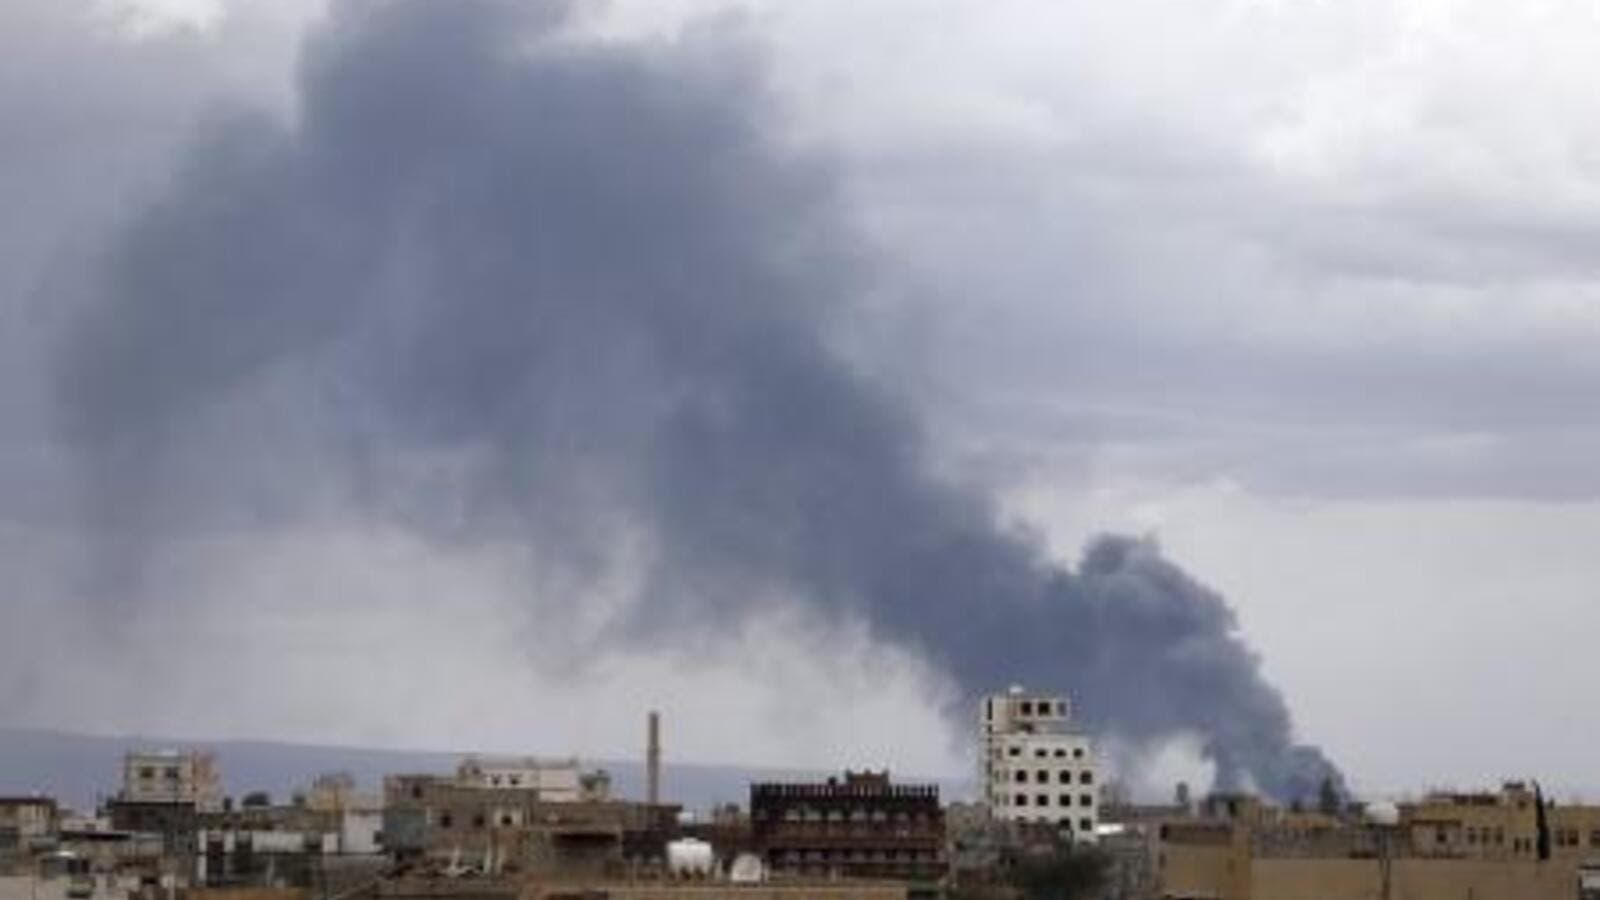 Saudi Arabia has conducted thousands of airstrikes in Yemen over the past four months. (AFP/File)